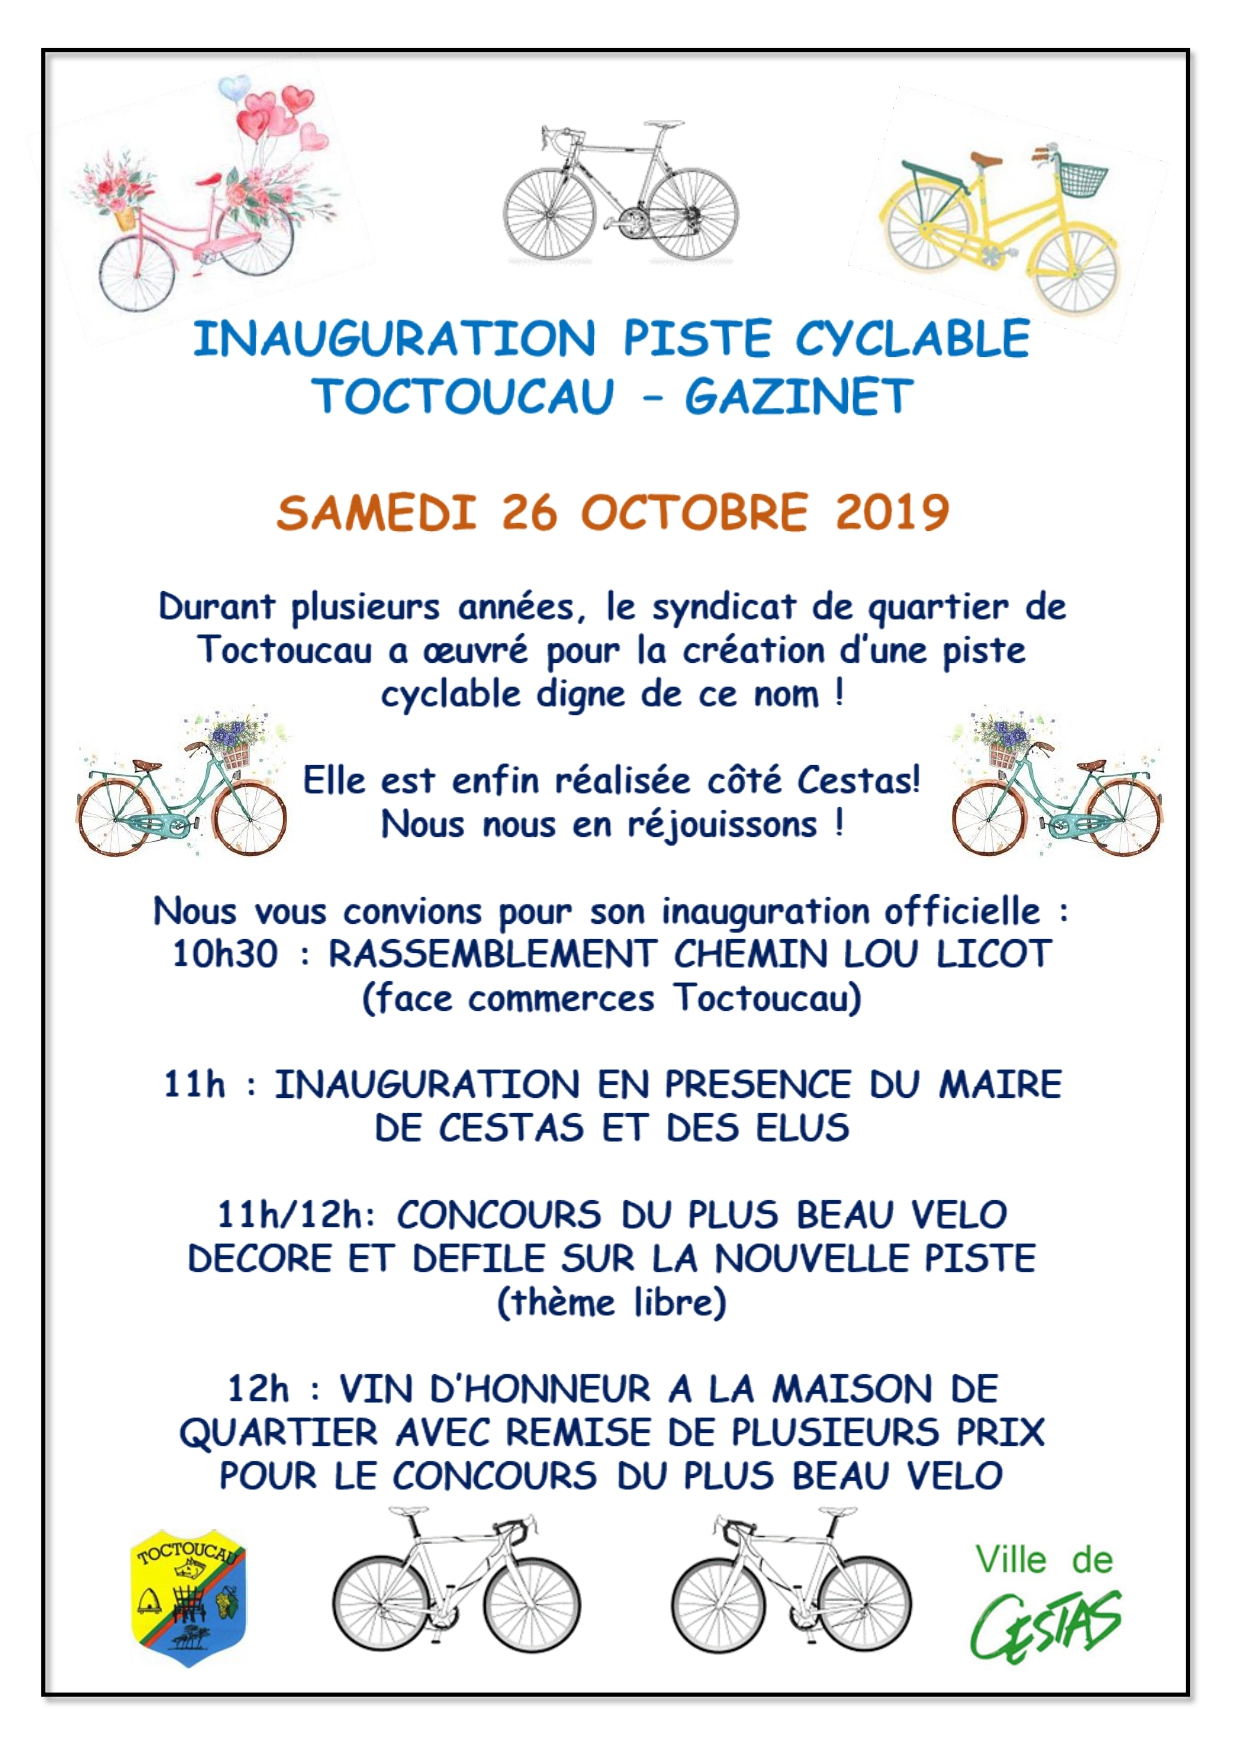 PISTE CYCLABLE v3 affiche OCT 2019 page-0001 - Copie